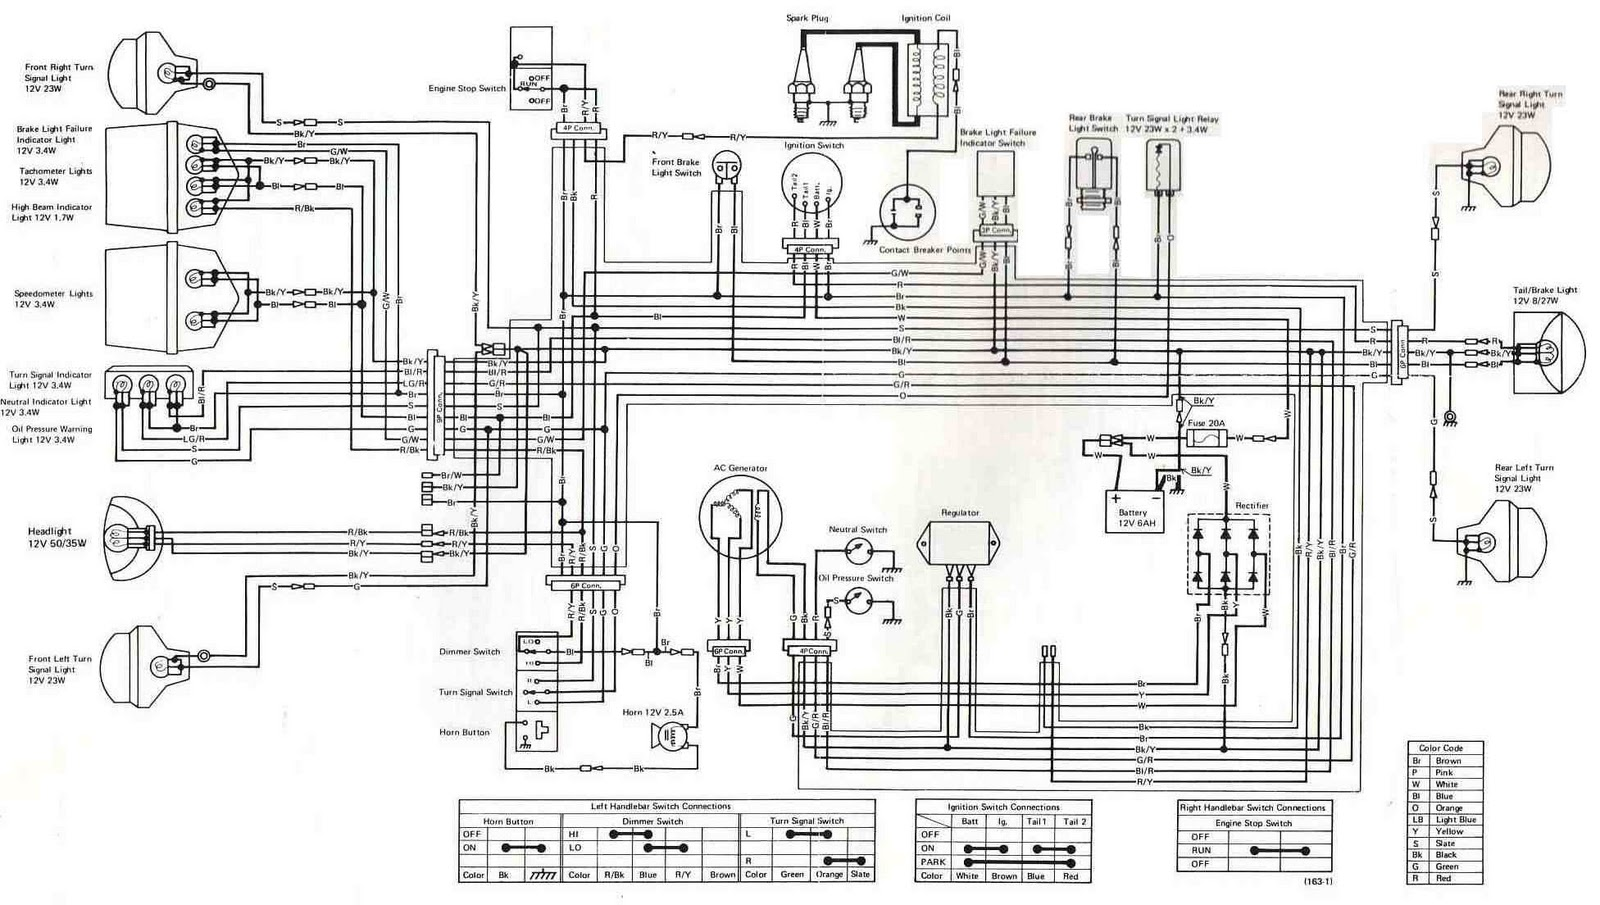 1983 kawasaki klt 200 wiring diagram wiring diagram electrical of kawasaki klt 200 kawasaki klt 200 wiring diagram | all about wiring diagrams #1